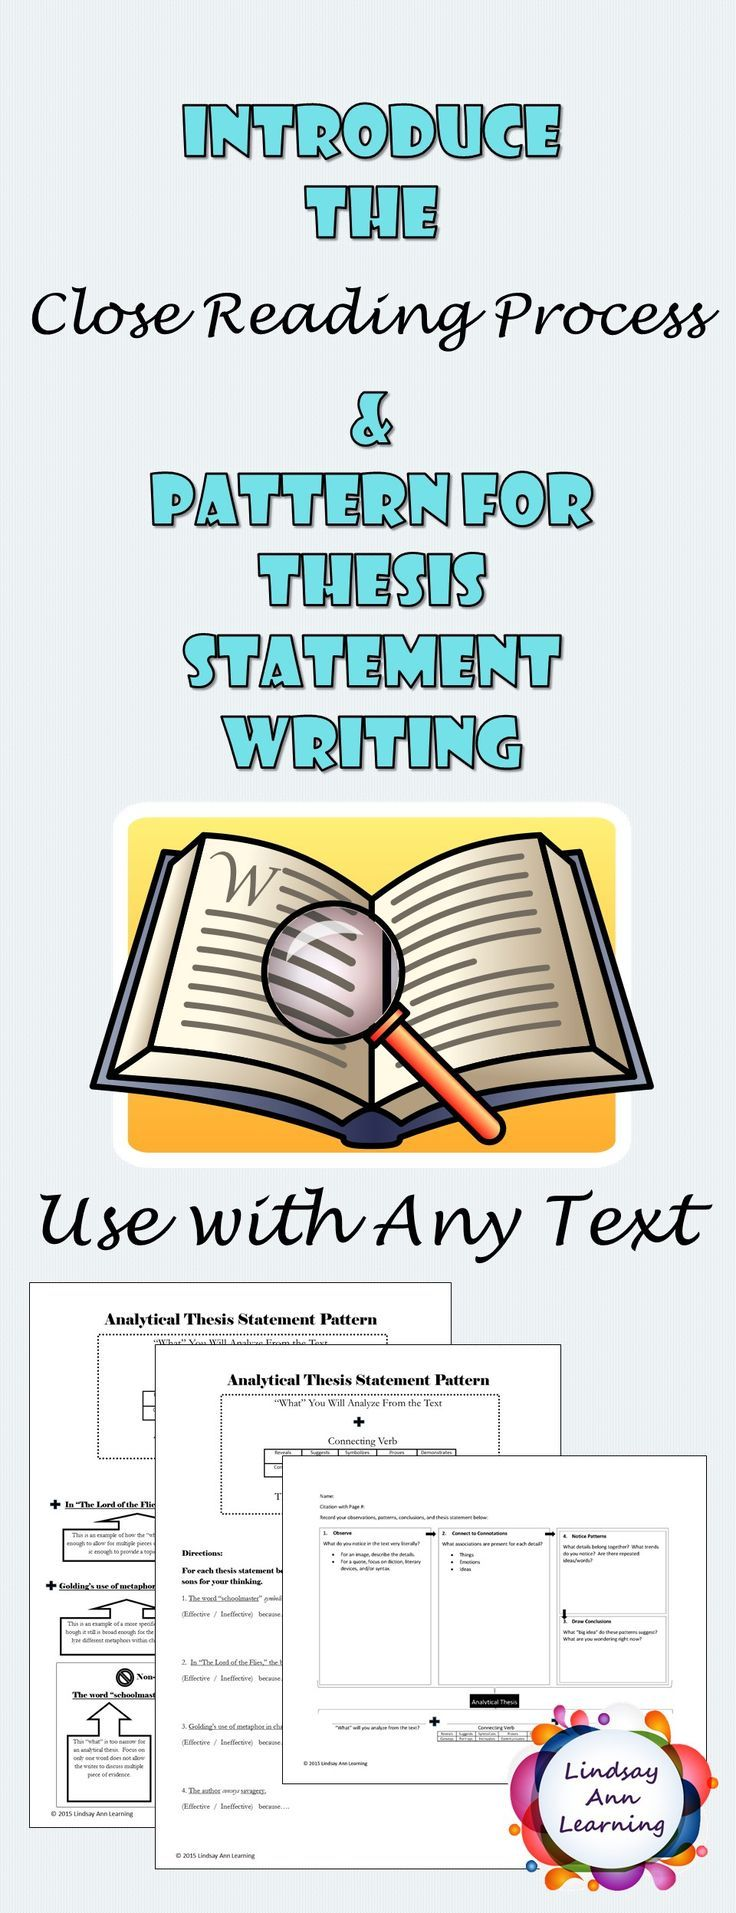 FREE RESOURCE!  Teach textual analysis with confidence! Your students will learn a successful pattern for thesis statement writing and close reading analysis with these time-tested resources.